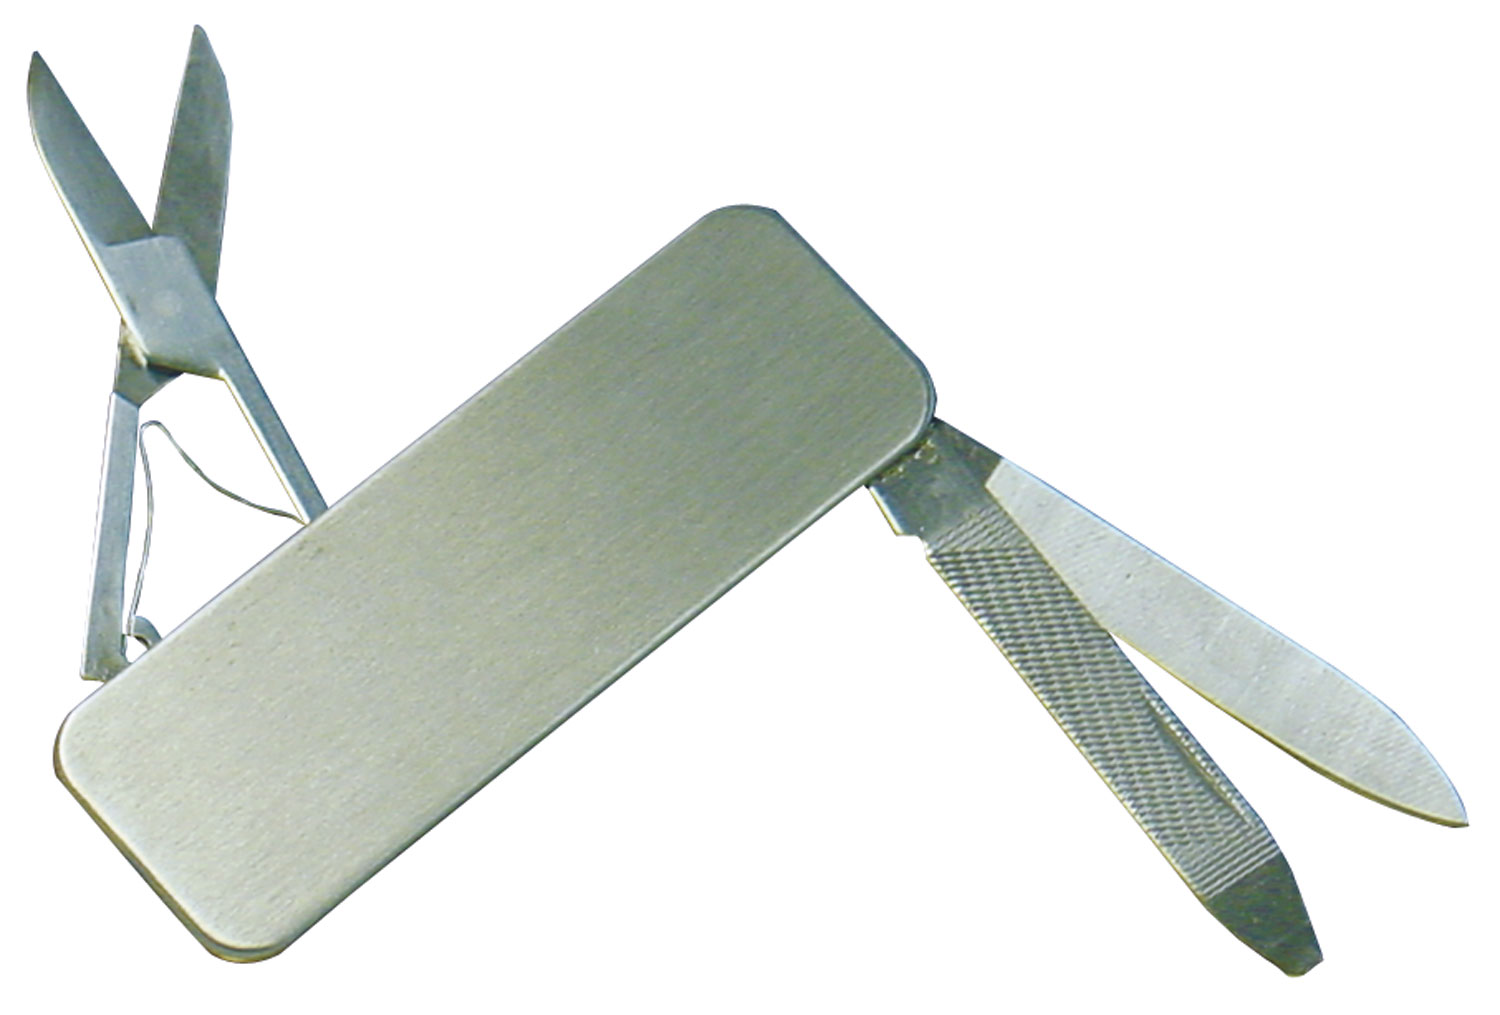 00175000 - Zippo Pocket Knife With Scissors